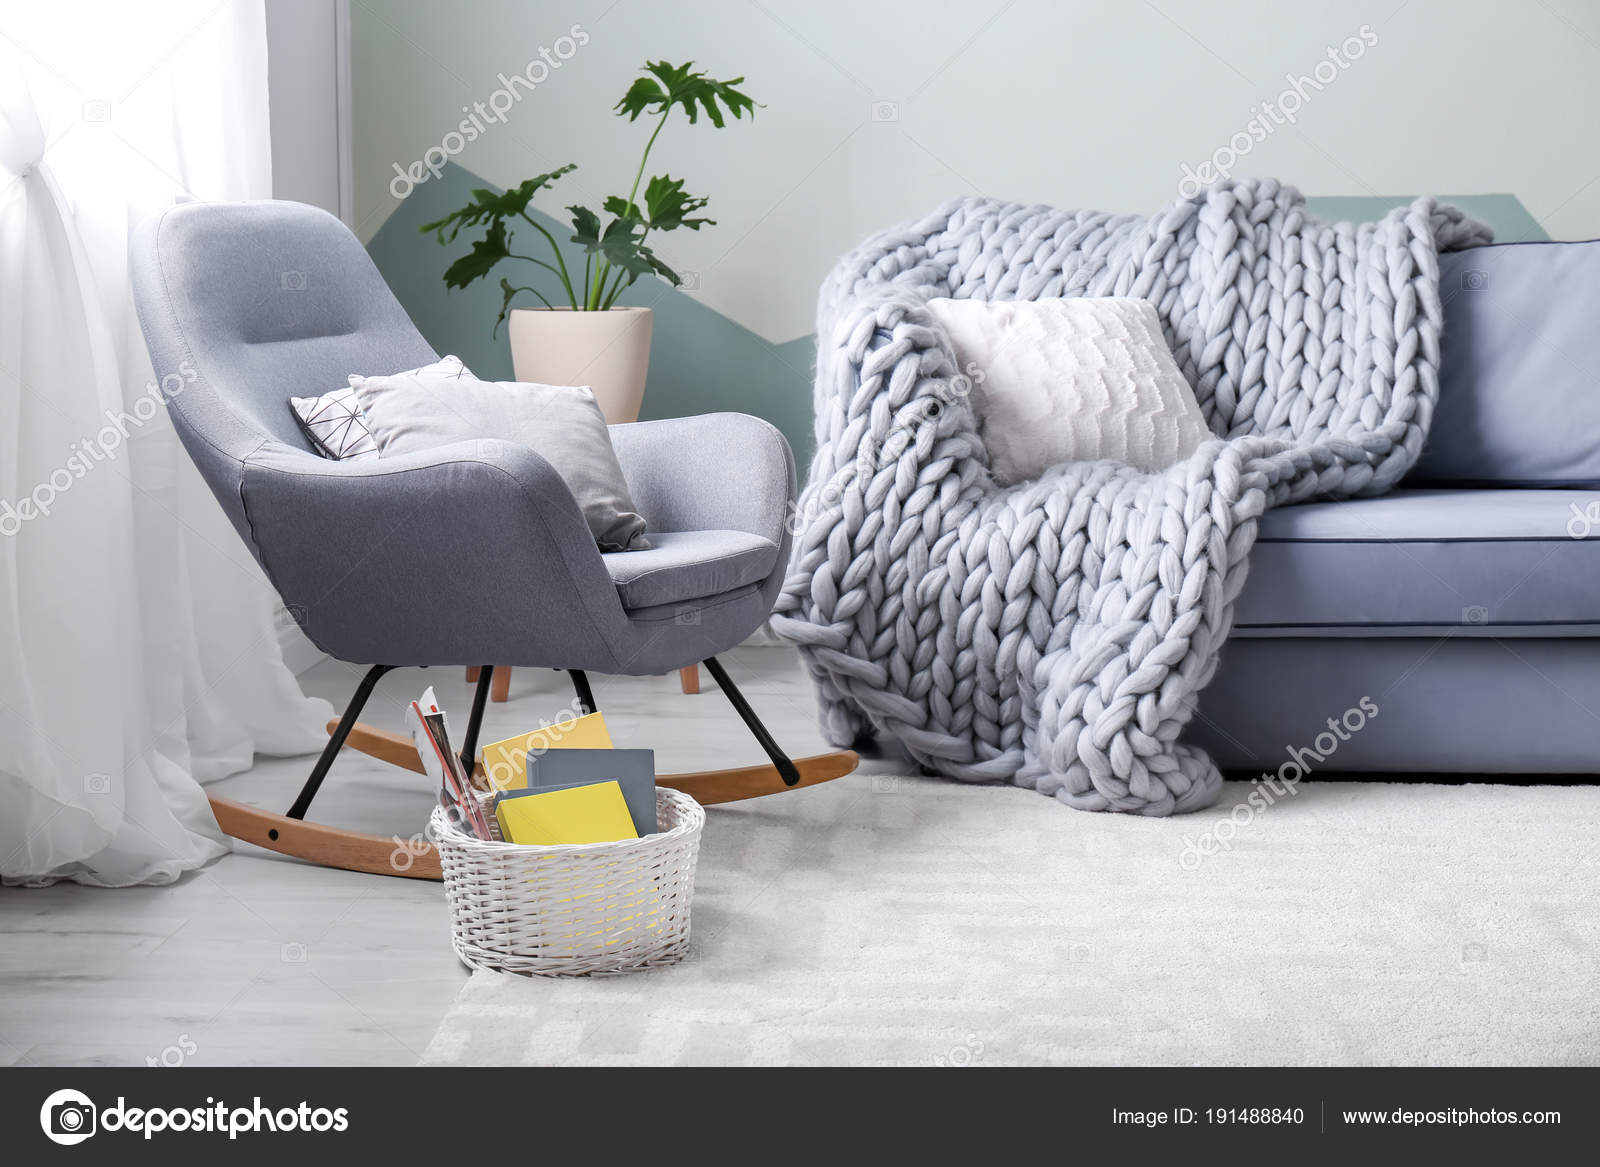 Stylish Living Room Interior With Comfortable Sofa And Rocking Chair